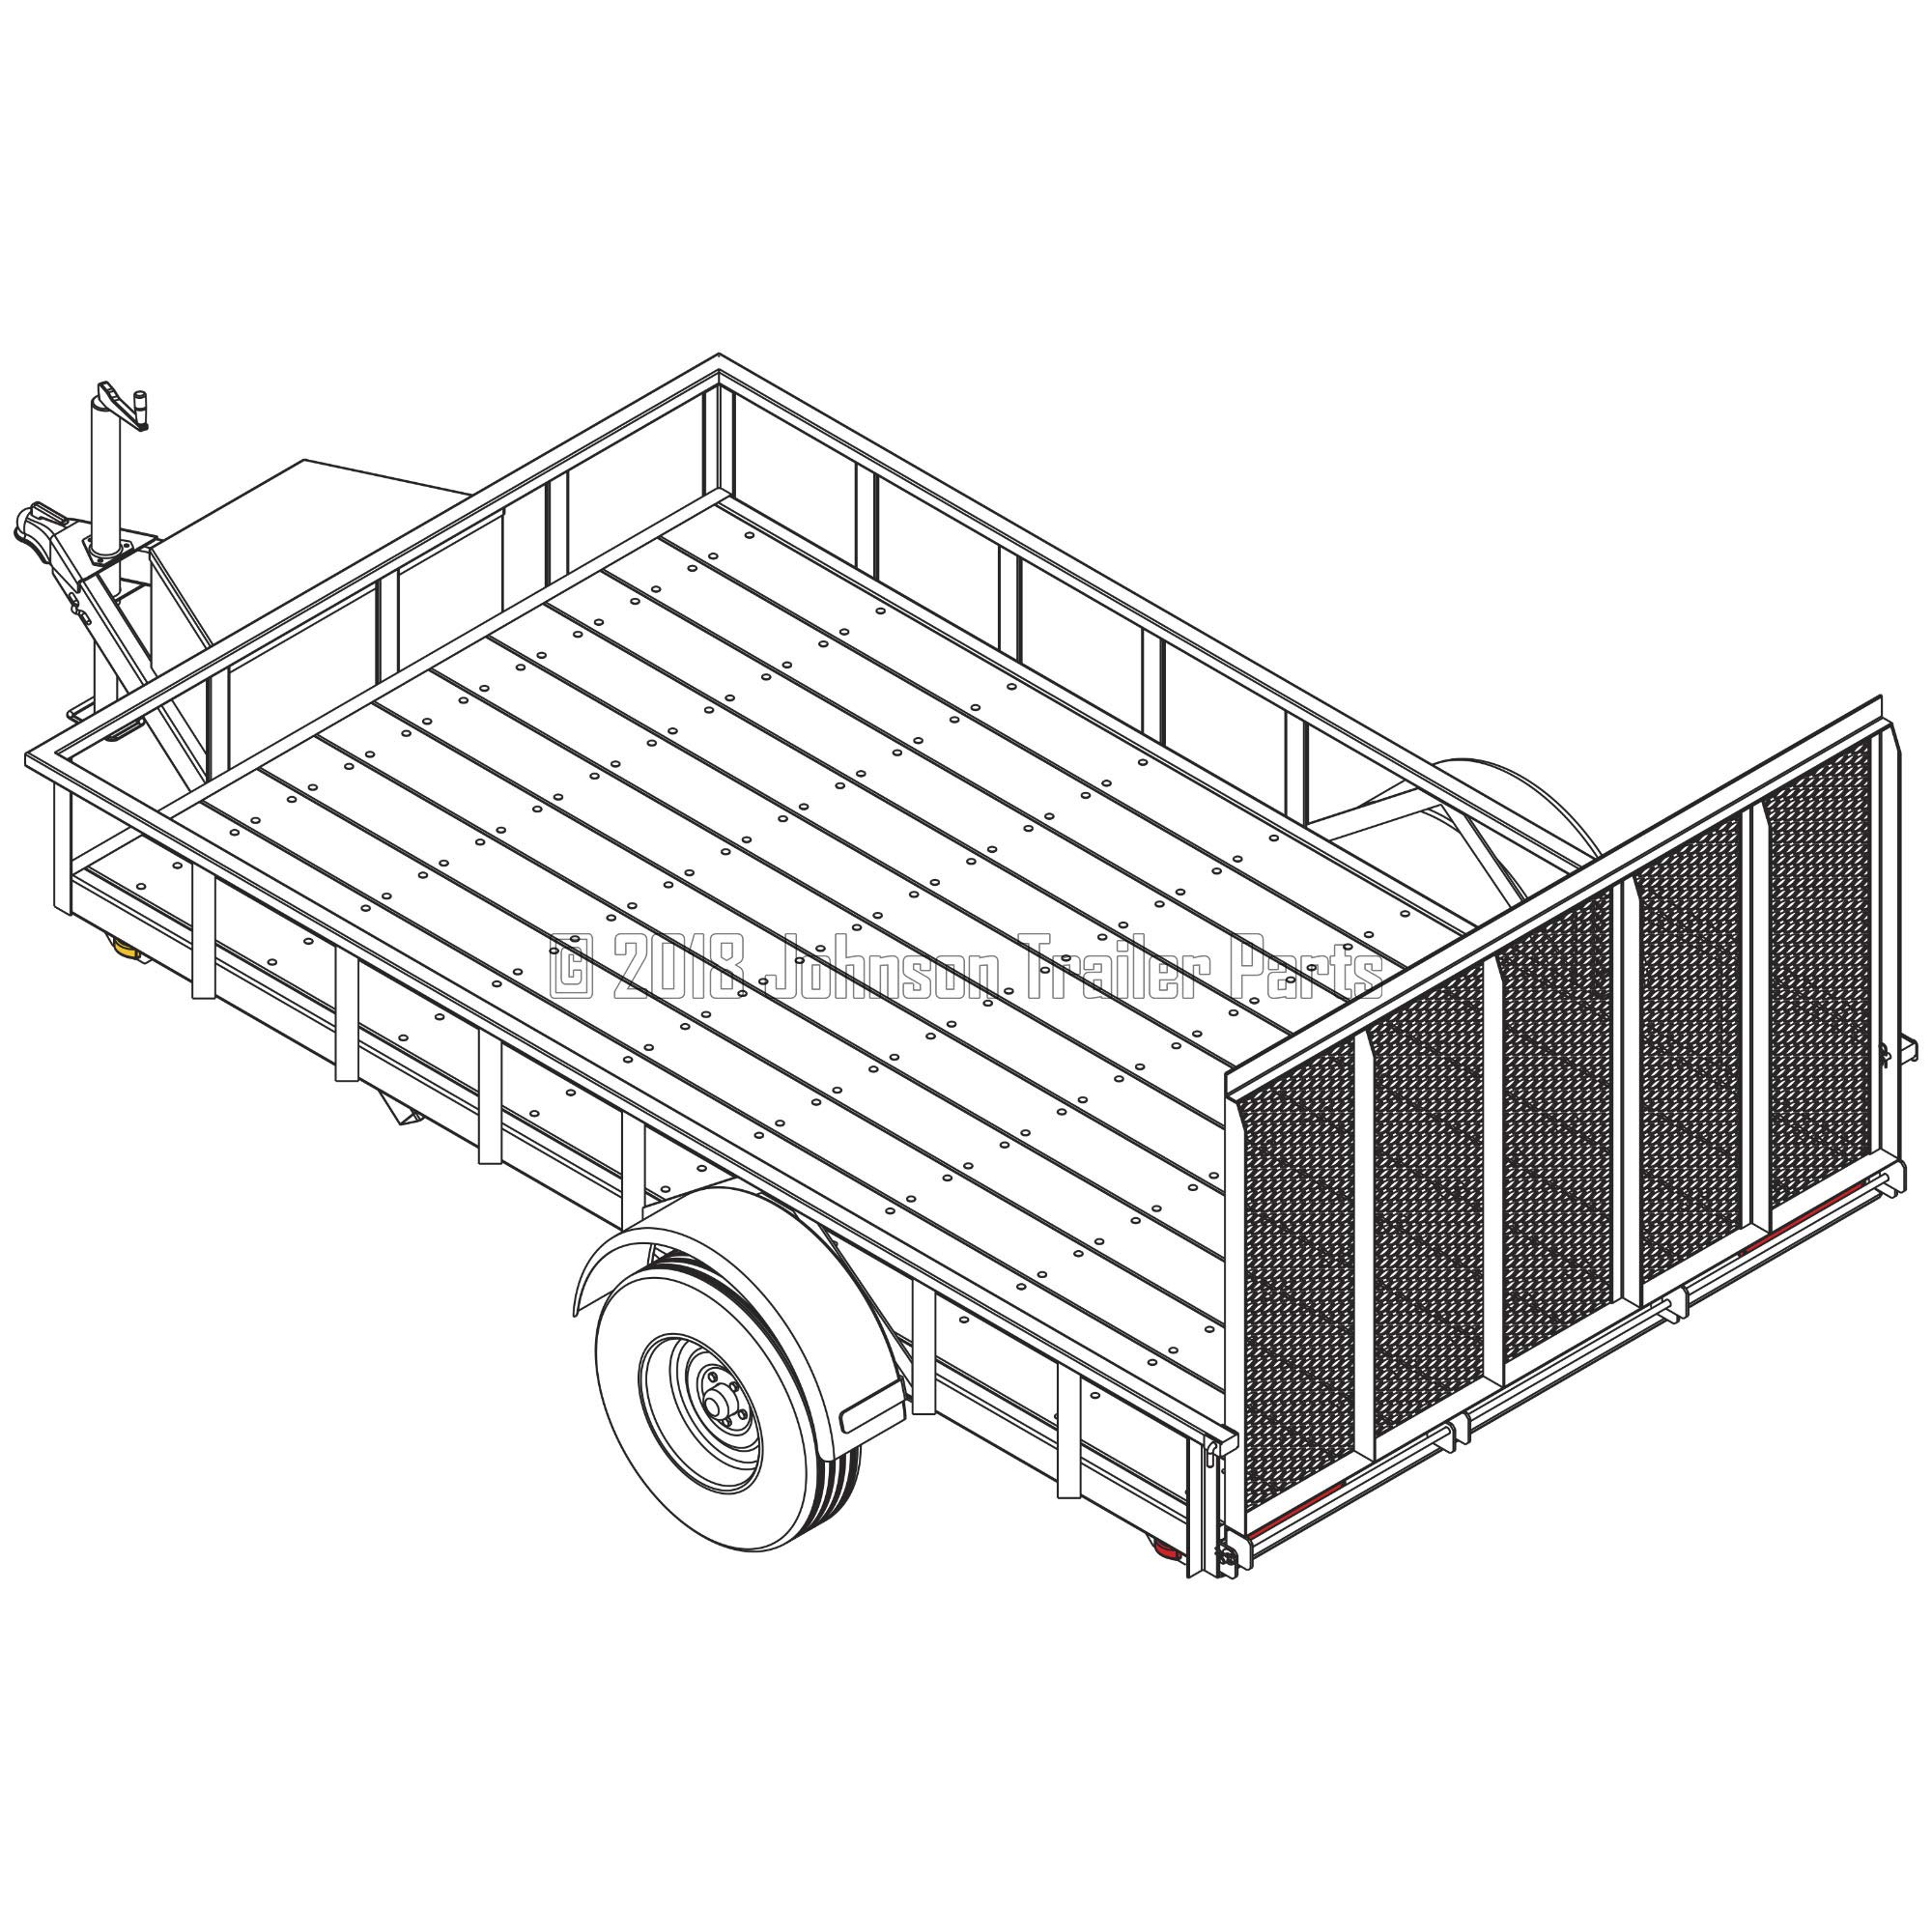 6′ 10'' x 12′ Utility Trailer Plans - 3,500 lb Capacity | Trailer Blueprints Model U82-144-35J by Johnson Trailer Parts